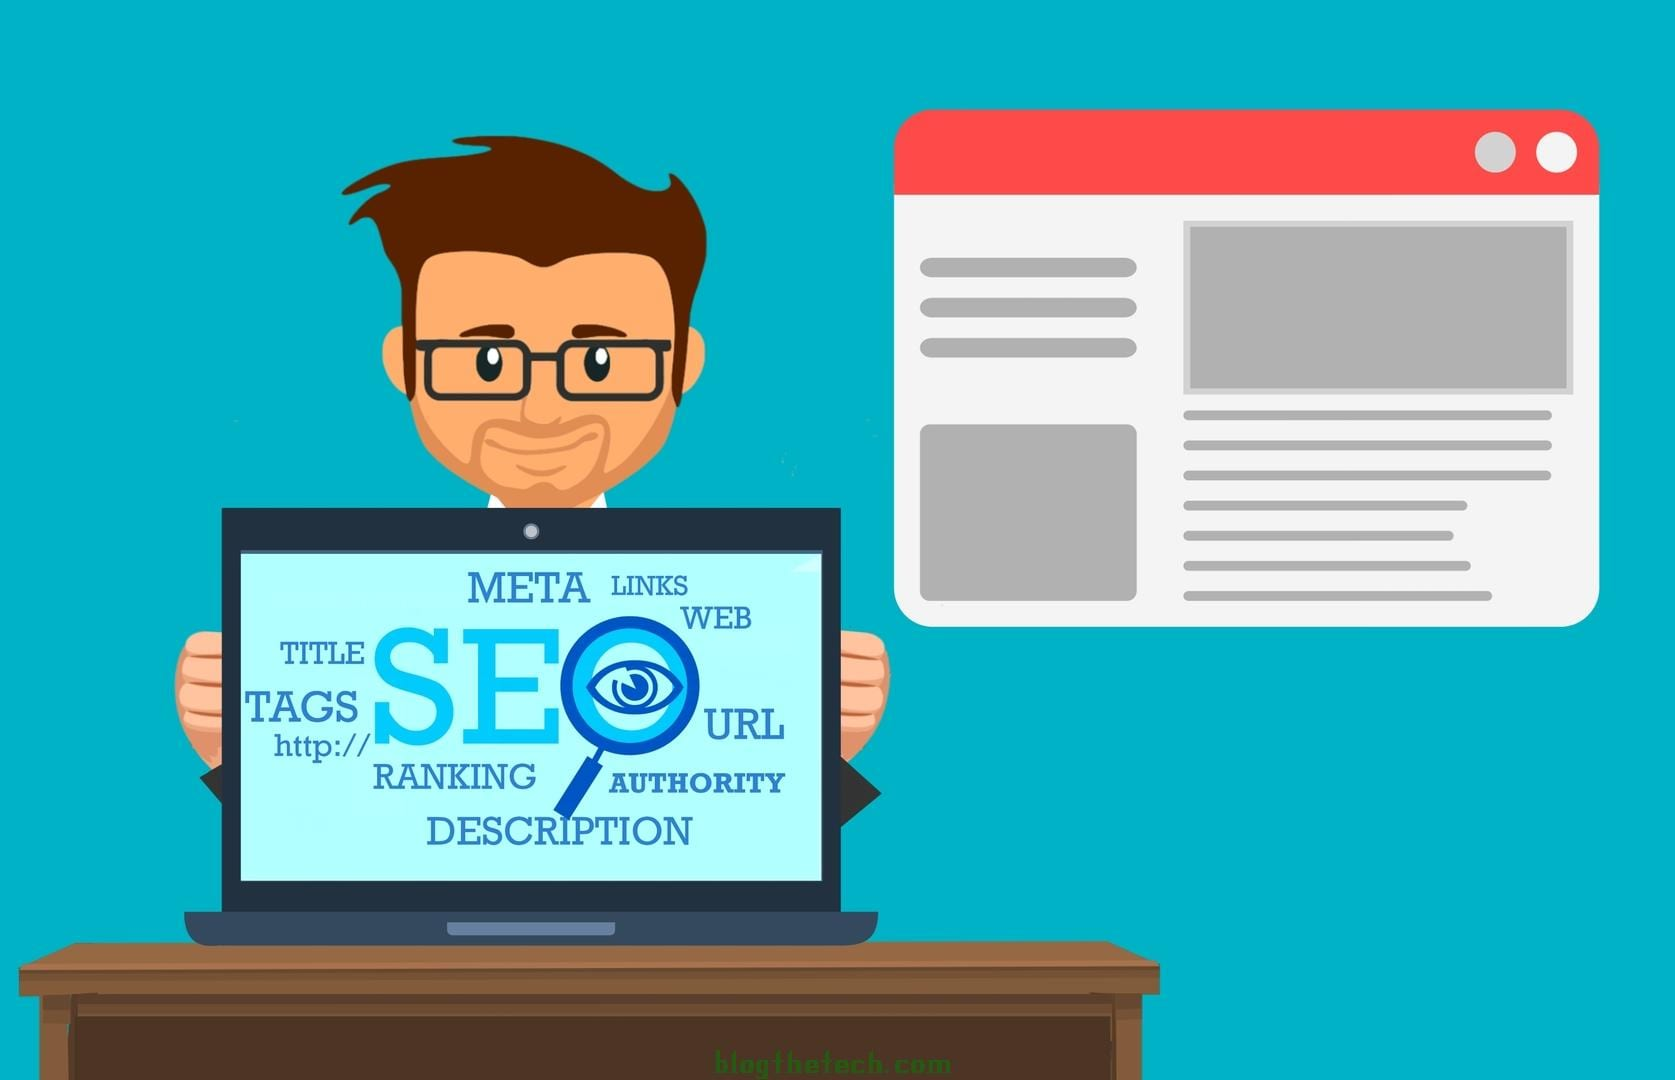 HERE IS WHY SEO IS IMPORTANT TO YOUR BUSINESS WEBSITE